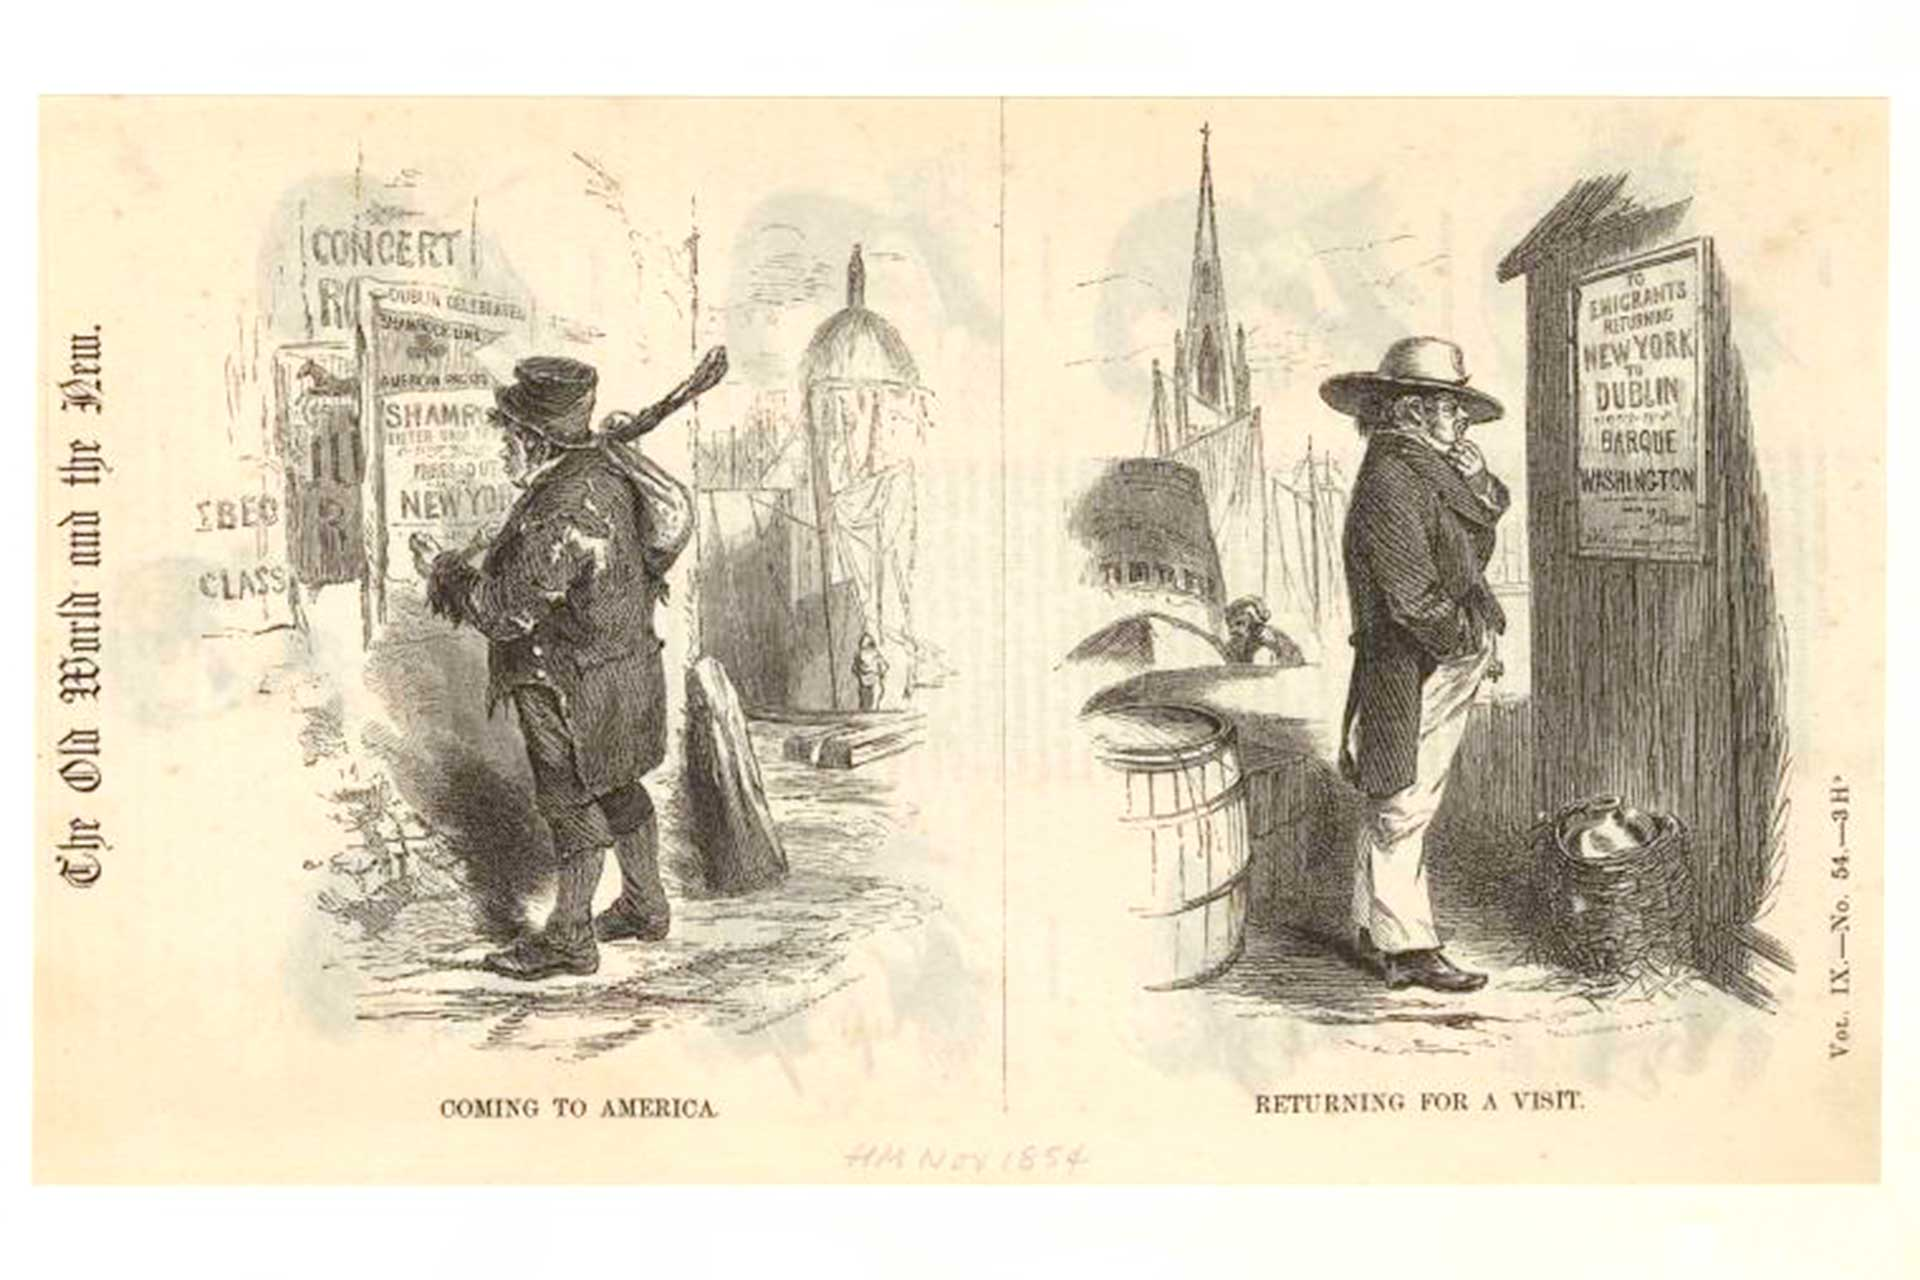 Coming To America; Returning For A Visit (Source: The Miriam and Ira D. Wallach Division of Art, Prints and Photographs: Picture Collection, The New York Public Library. Richardson & Cox, 1854).